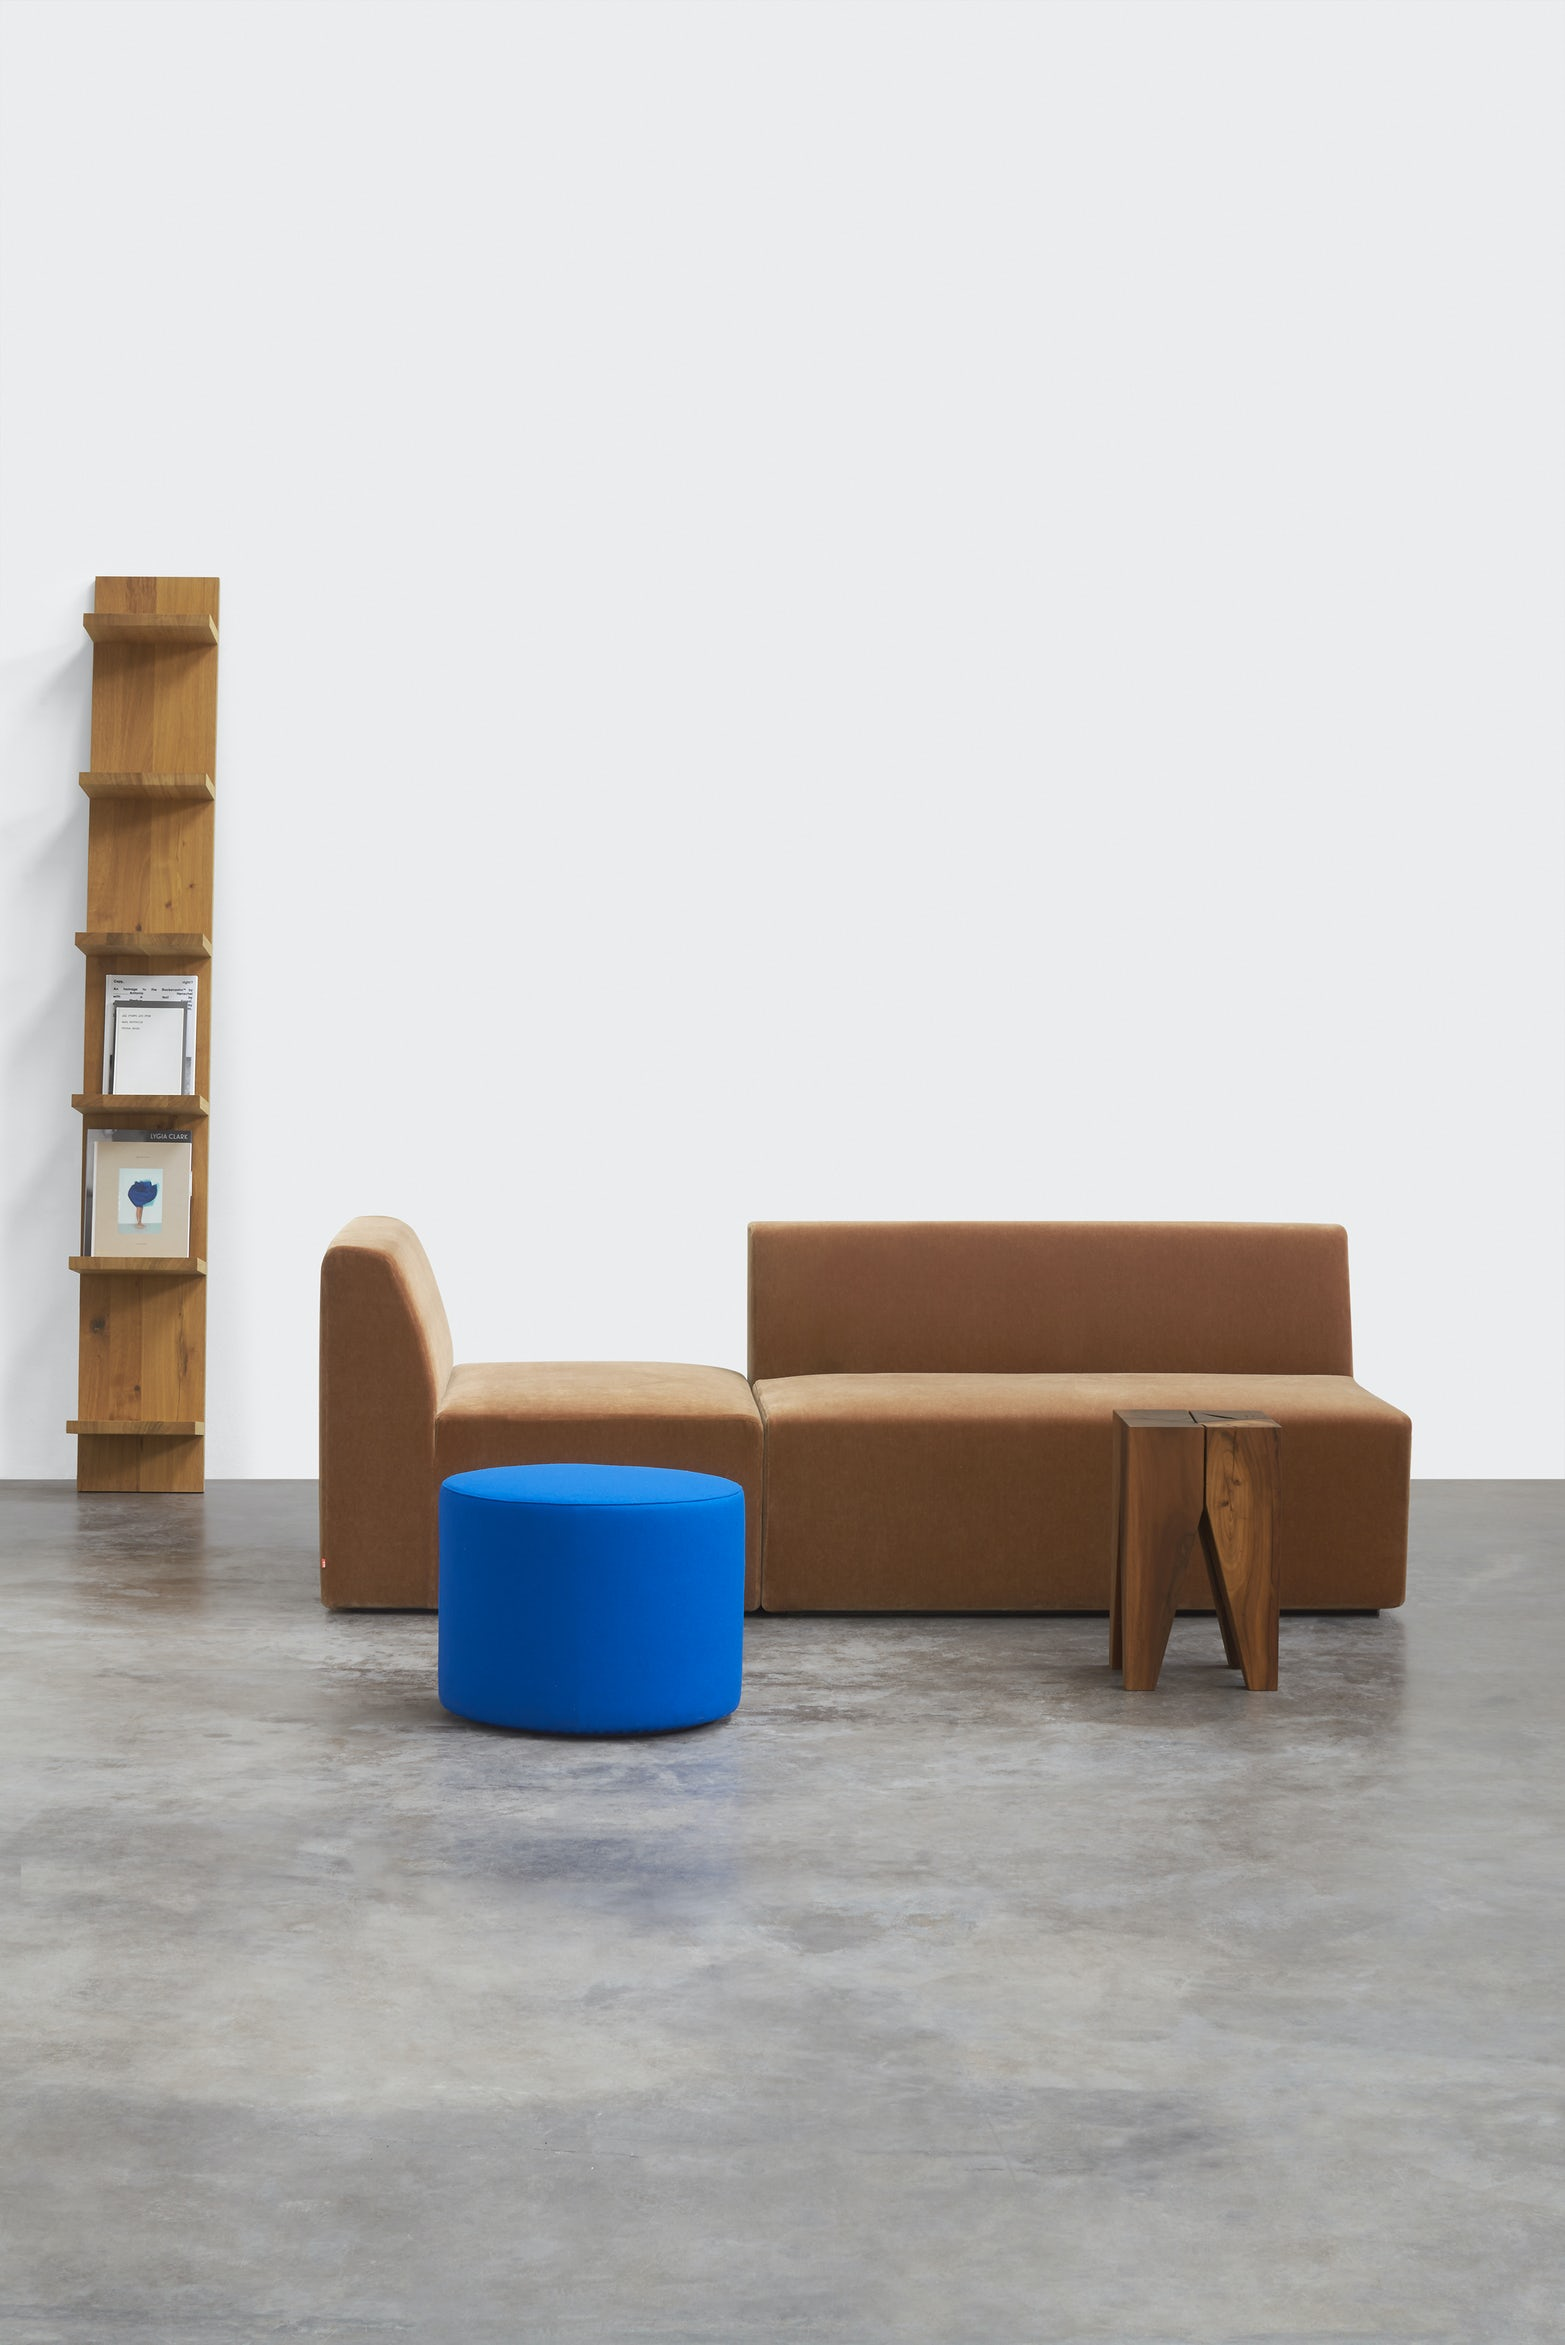 e15 mate shelf with kerman sofa and pouf and backenzahn stool